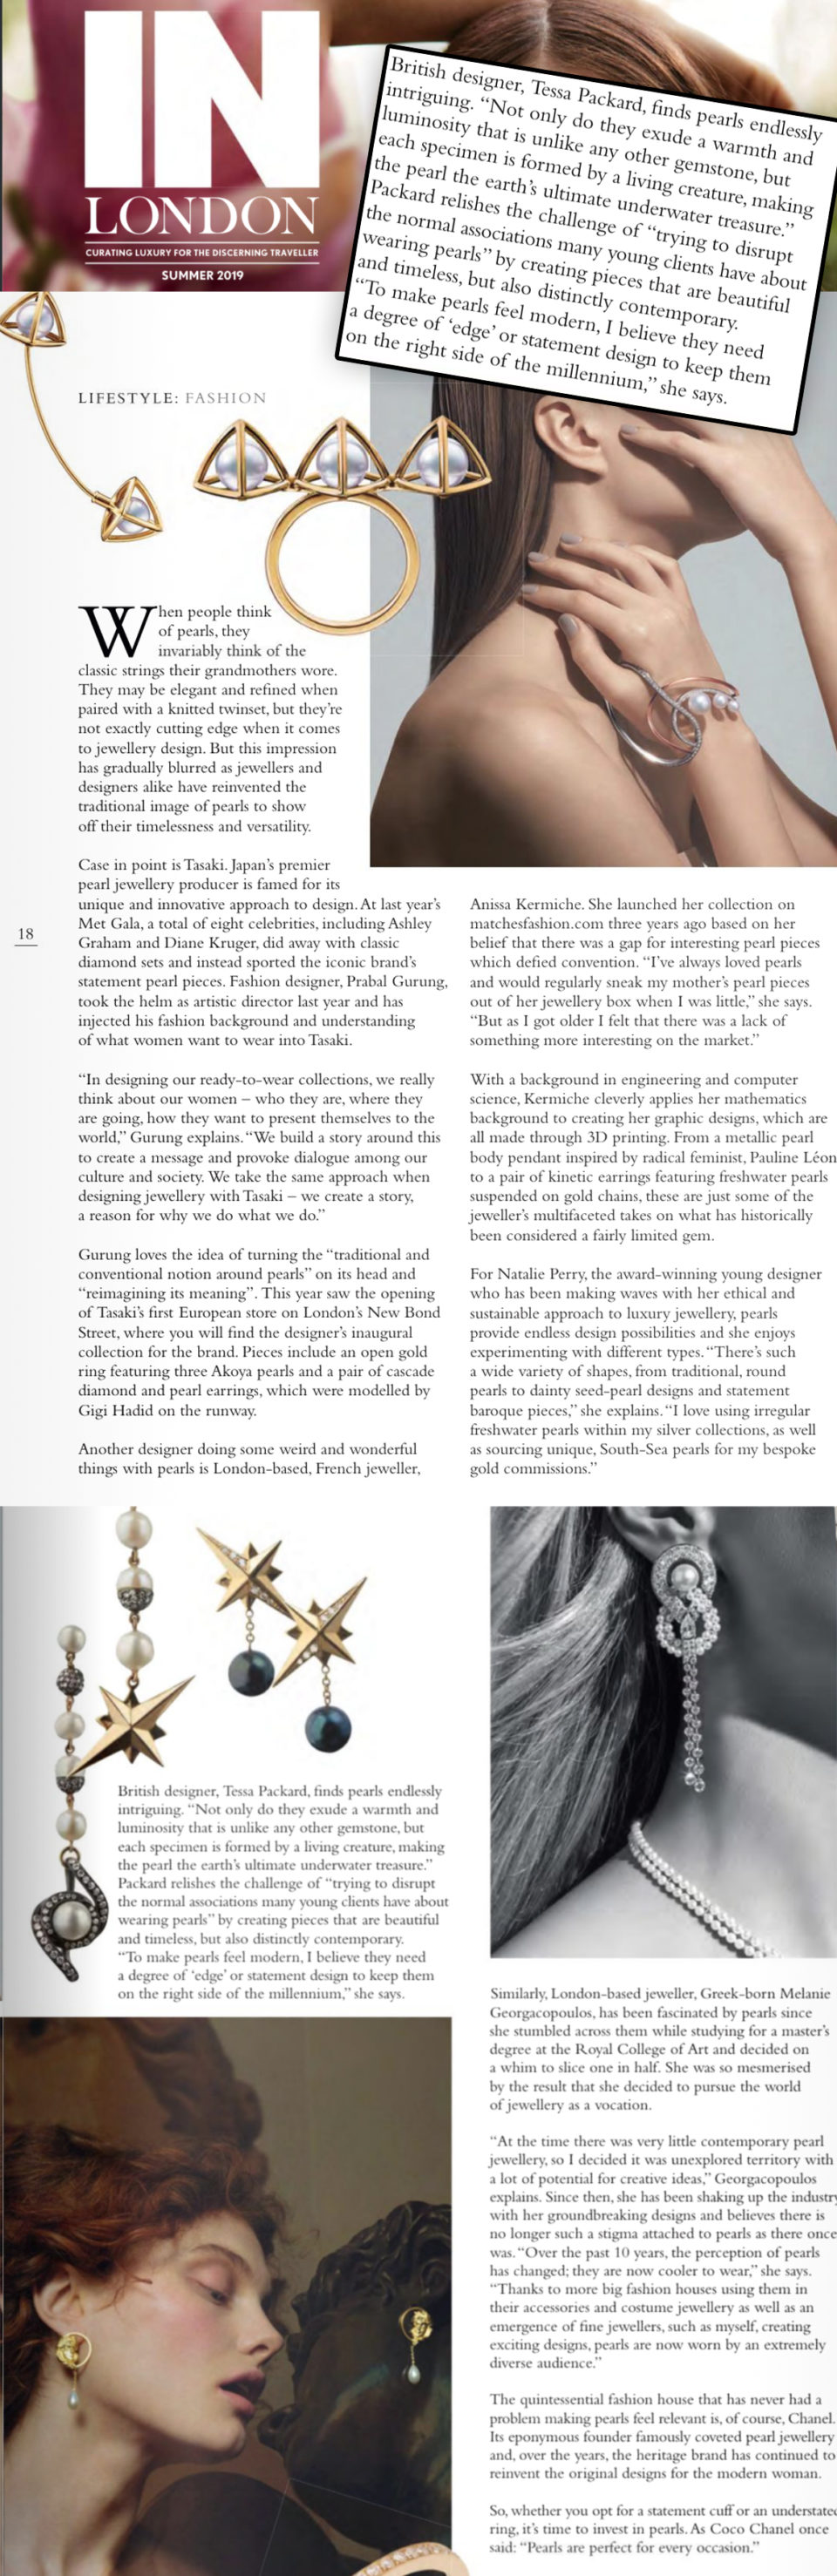 In London Magazine June 2019 Issue featuring 18ct Yellow Gold and Sterling Silver Voyager Earrings by Tessa Packard London Contemporary Fine Jewellery